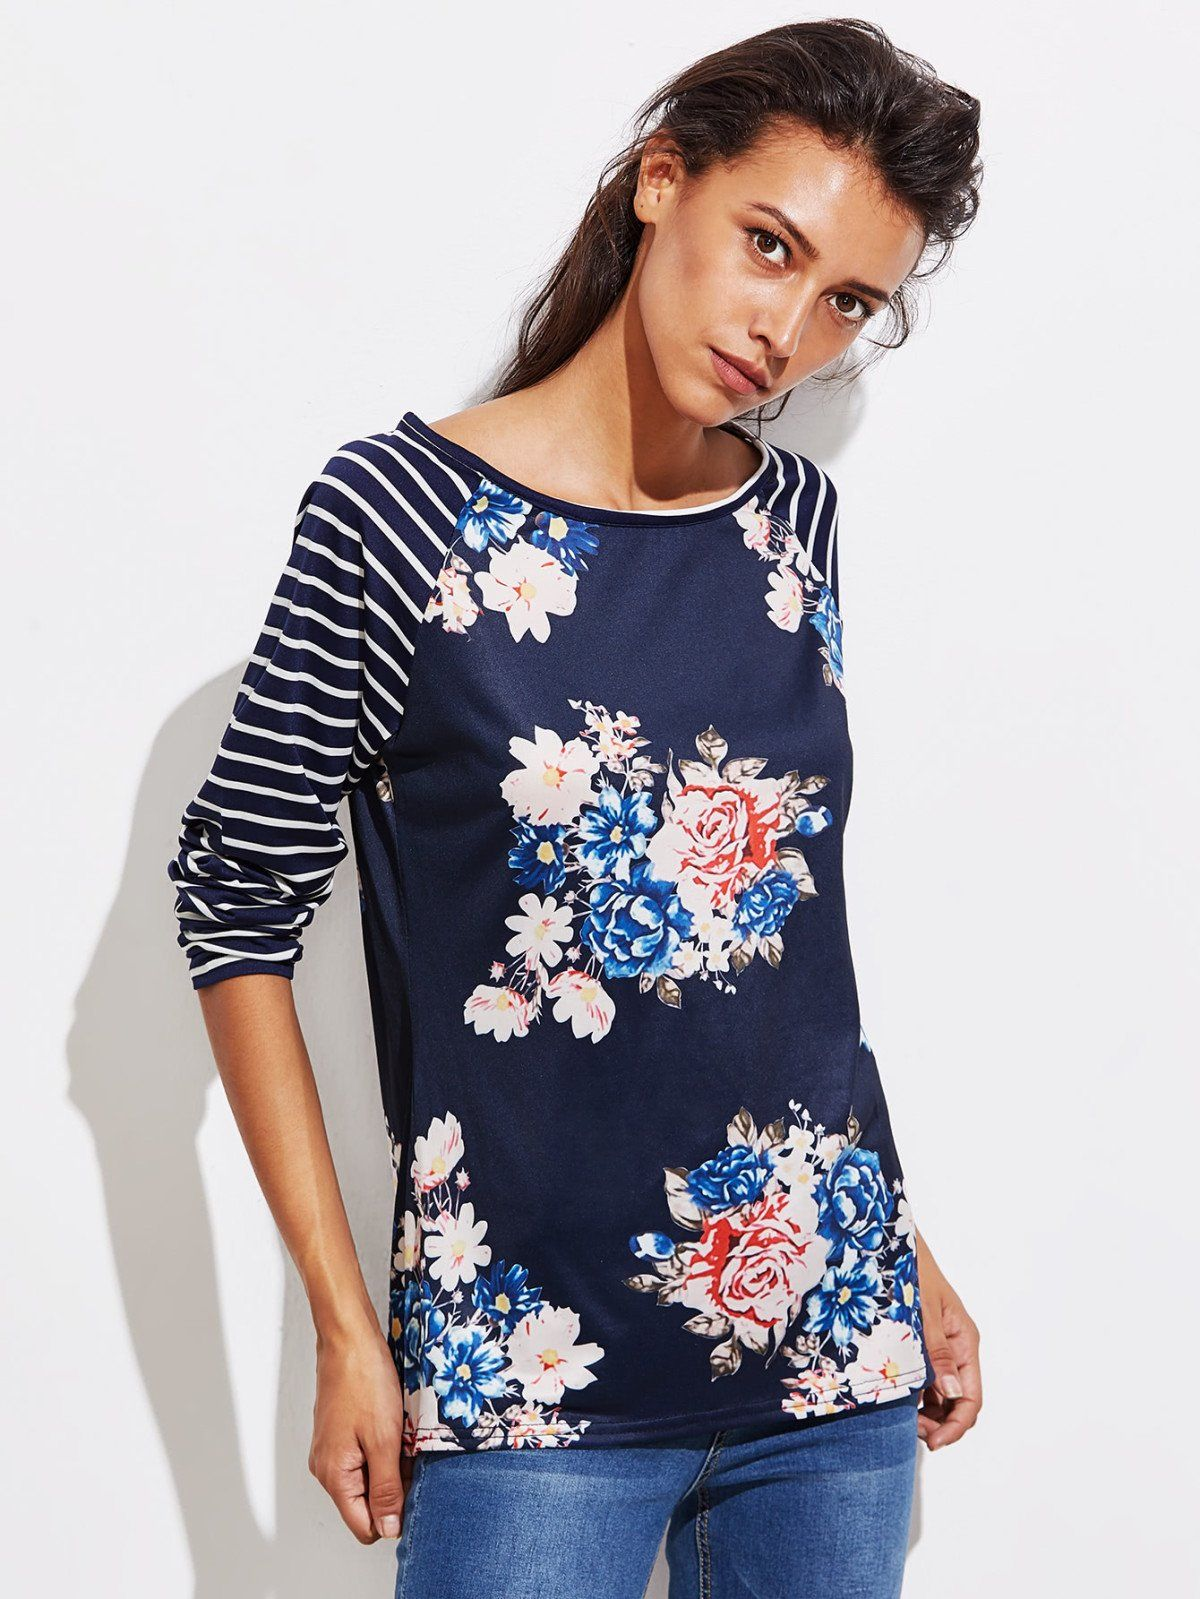 b5038708785a7 Shop Stripe Raglan Sleeve Florals T-shirt online. SheIn offers Stripe Raglan  Sleeve Florals T-shirt   more to fit your fashionable needs.